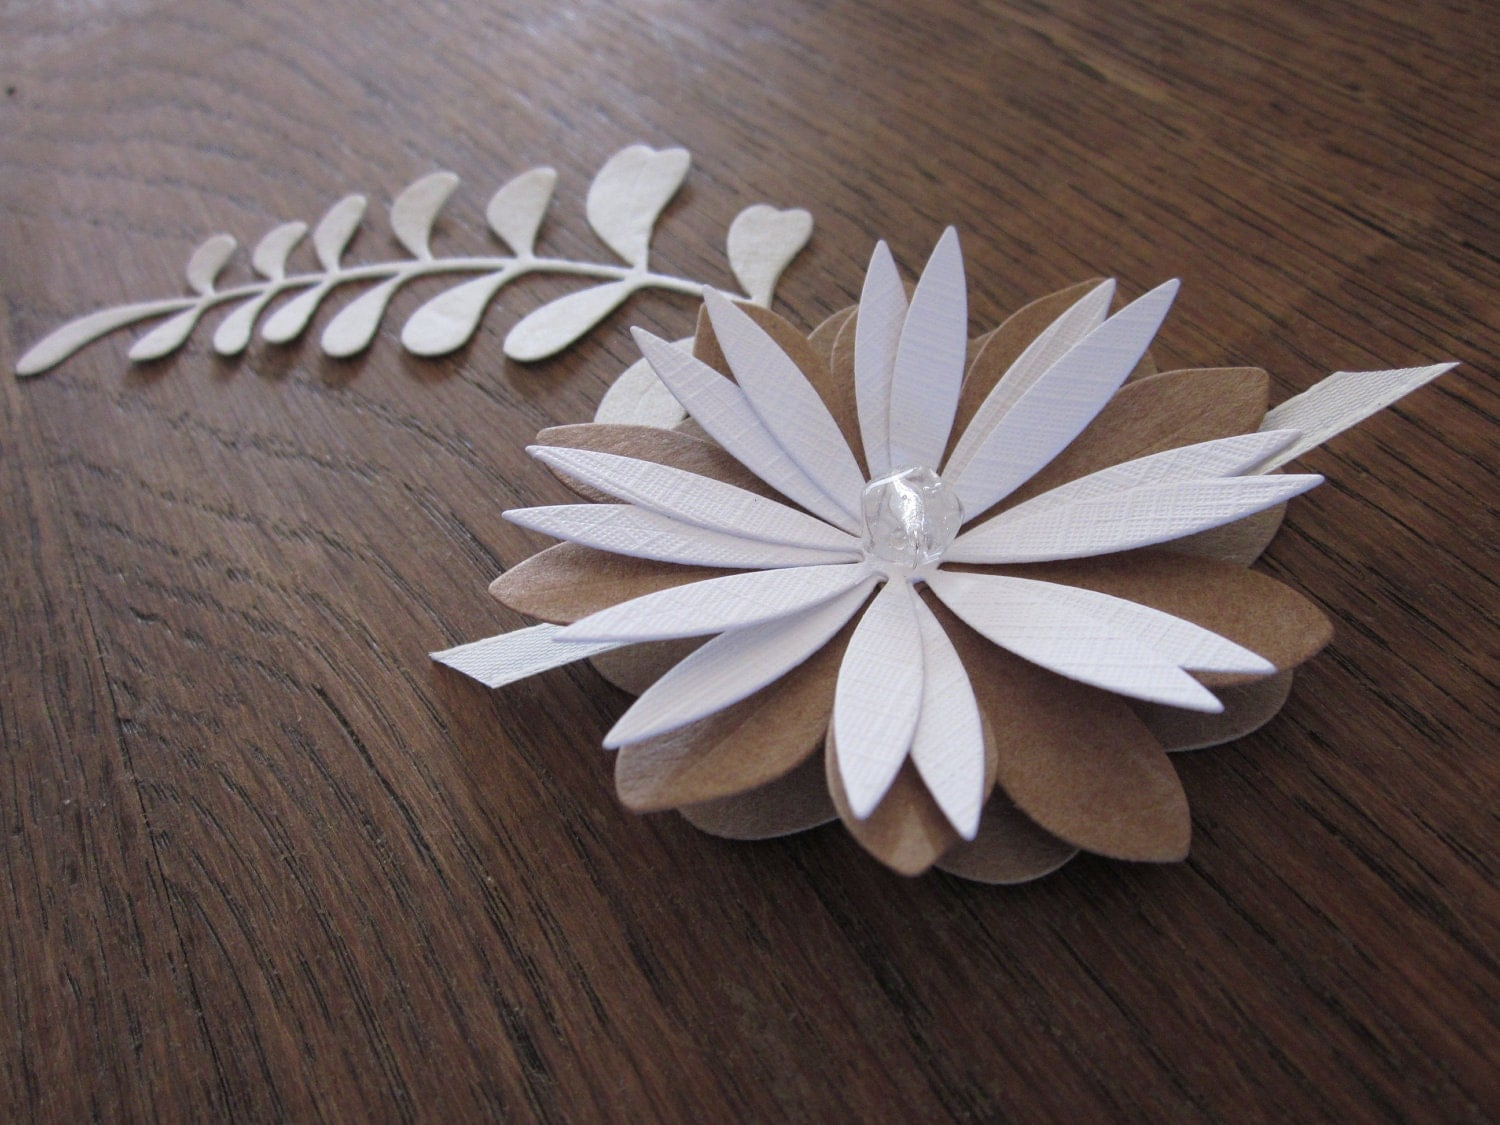 3D flower paper wall art in crème and Kraft paper Awesome